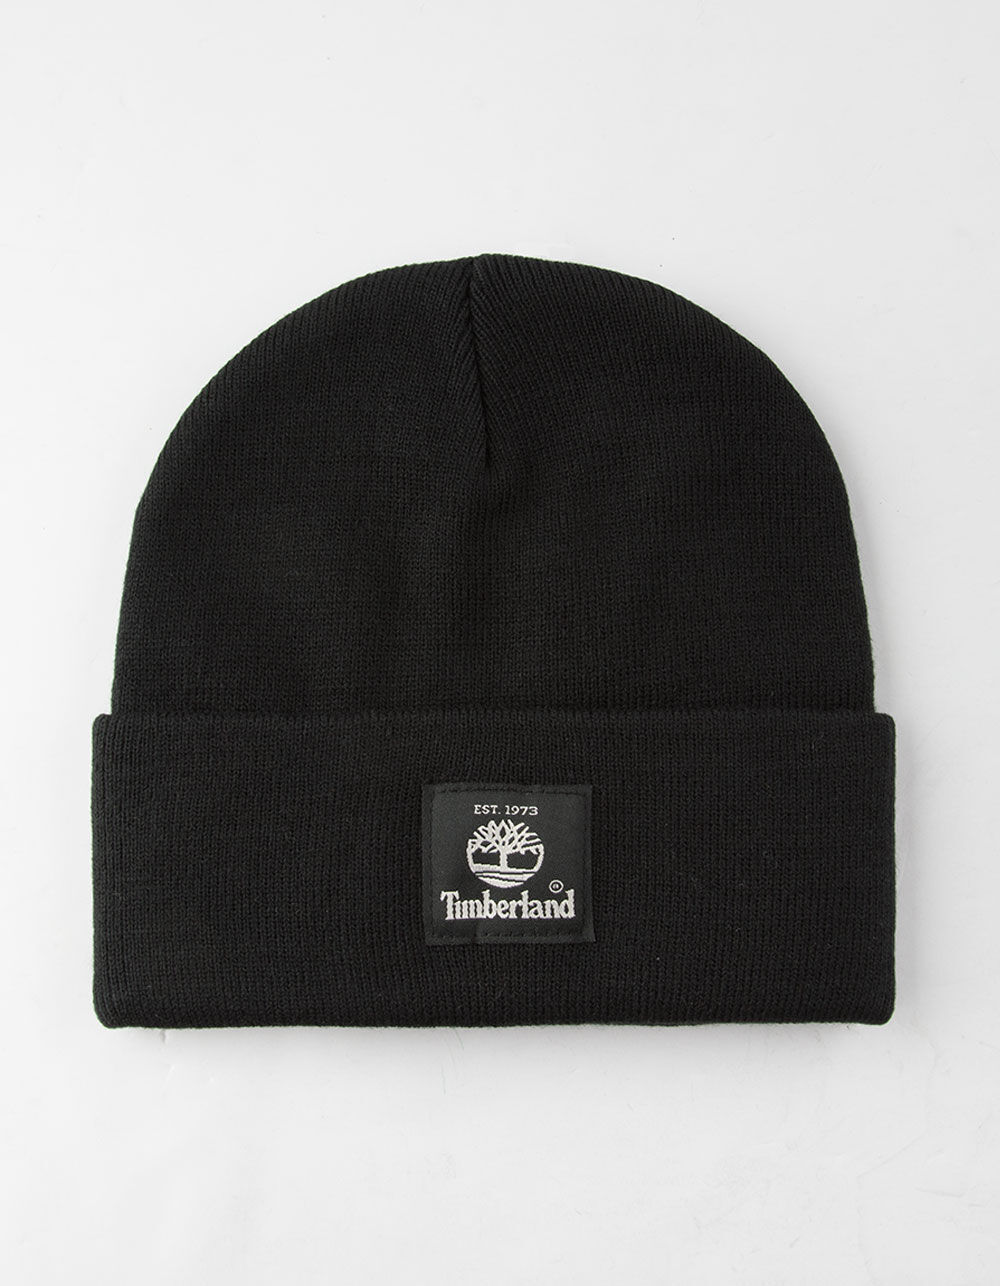 TIMBERLAND Short Watch Black Beanie